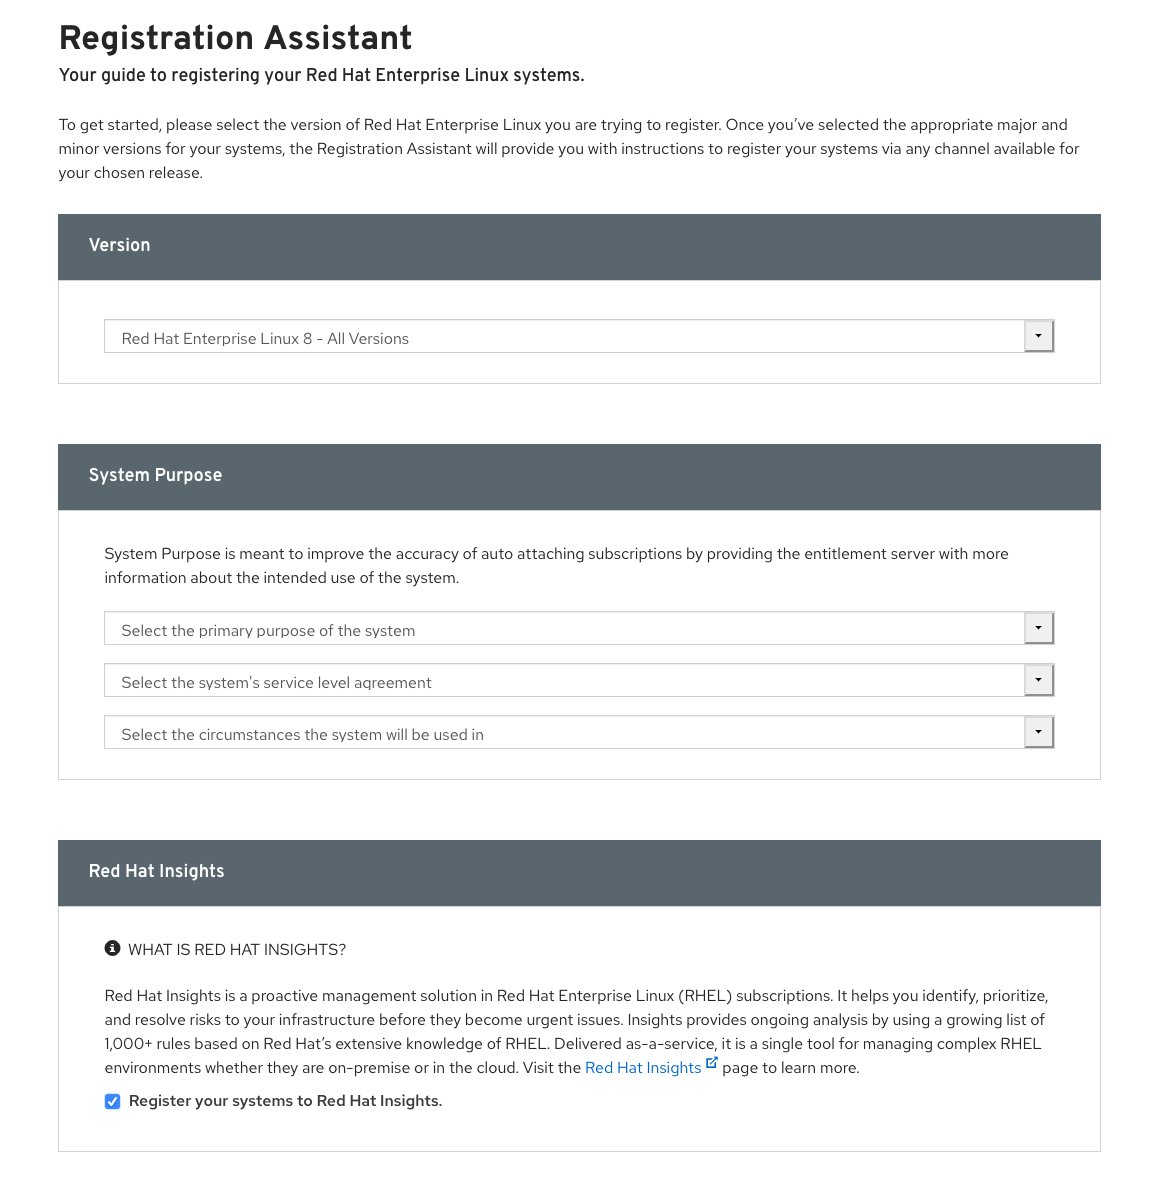 Figure 3: Registration Assistant for Red Hat Enterprise Linux that now includes (bottom) an option to register the Red Hat Insights client.